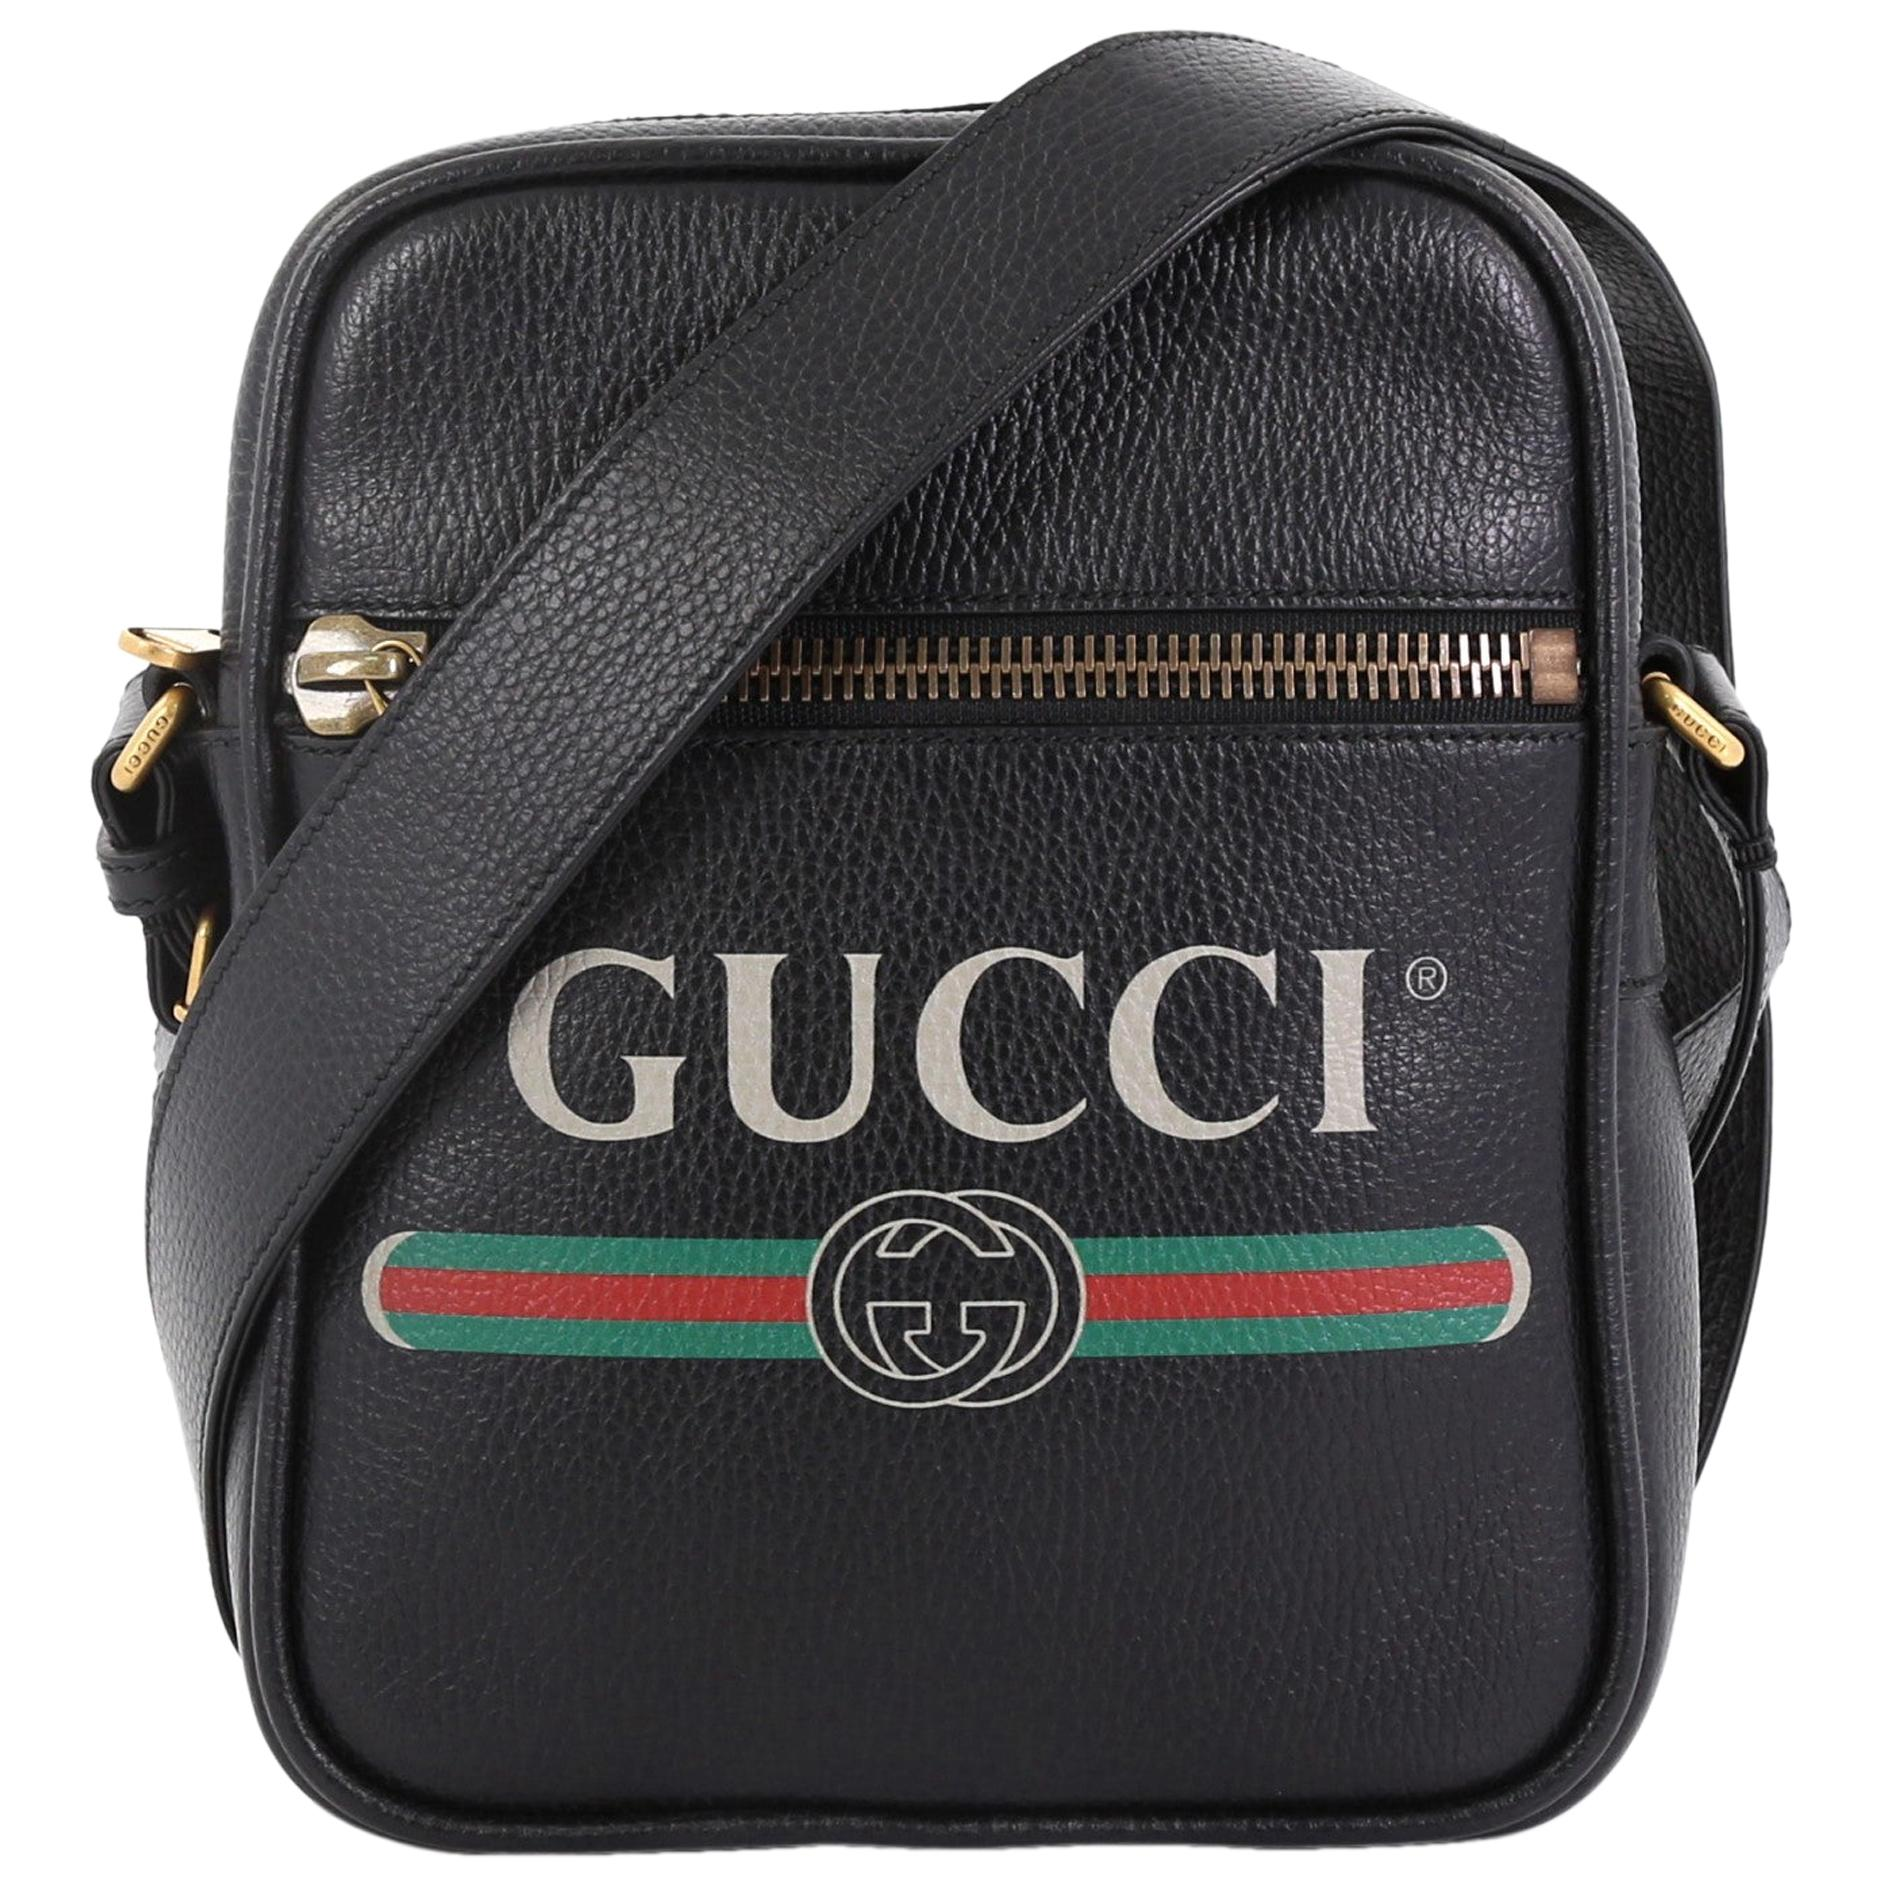 d097fe72d0aabf Gucci Logo Bags - 263 For Sale on 1stdibs